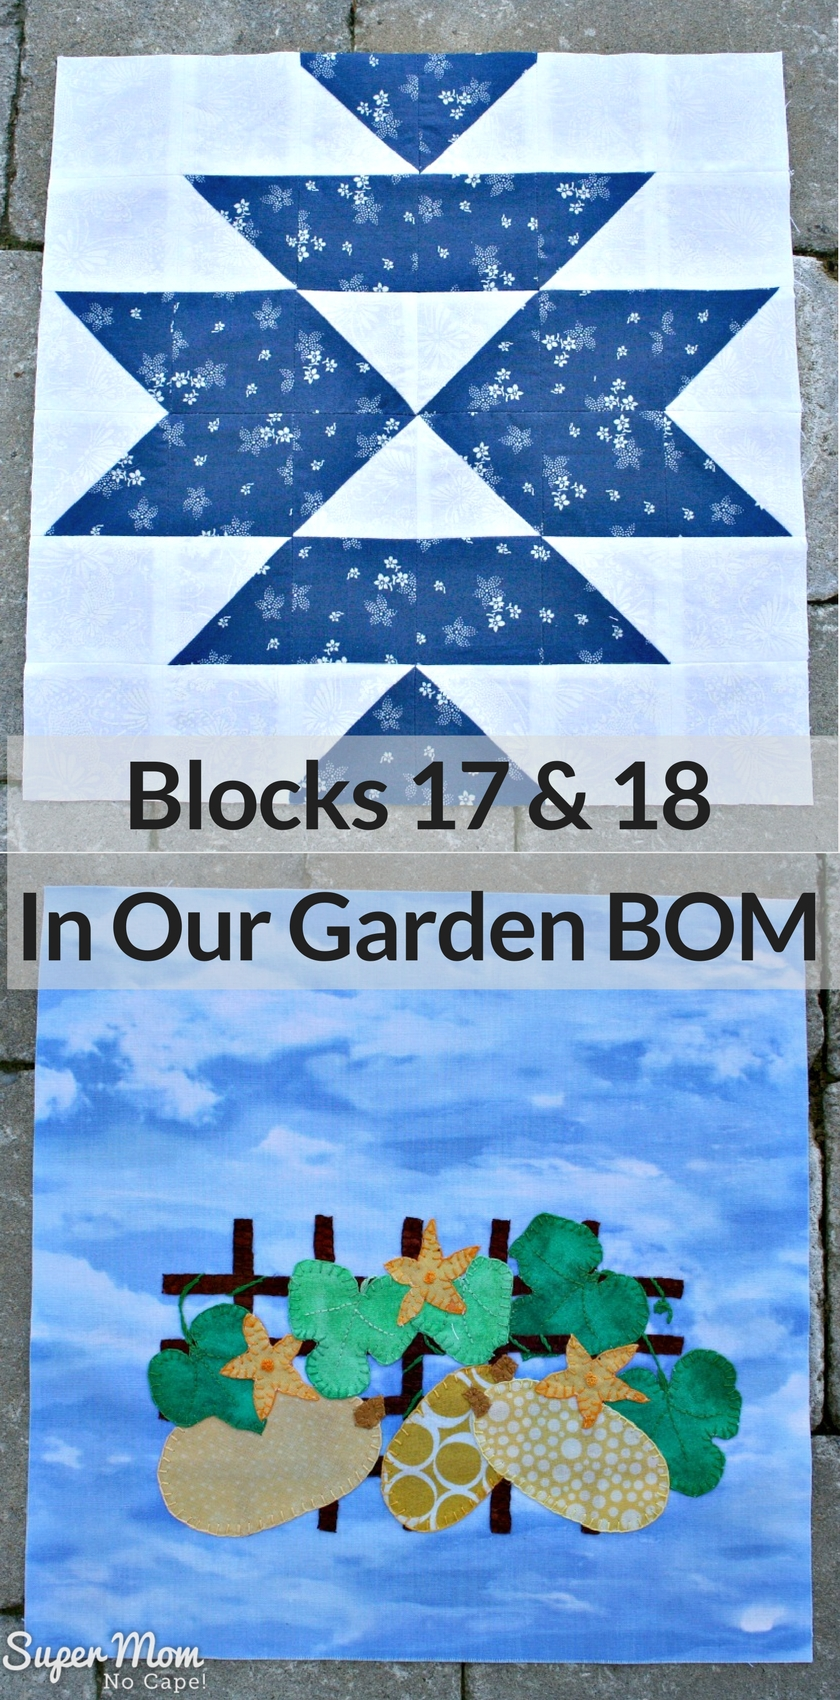 Blocks 17 & 18 - In Our Garden BOM